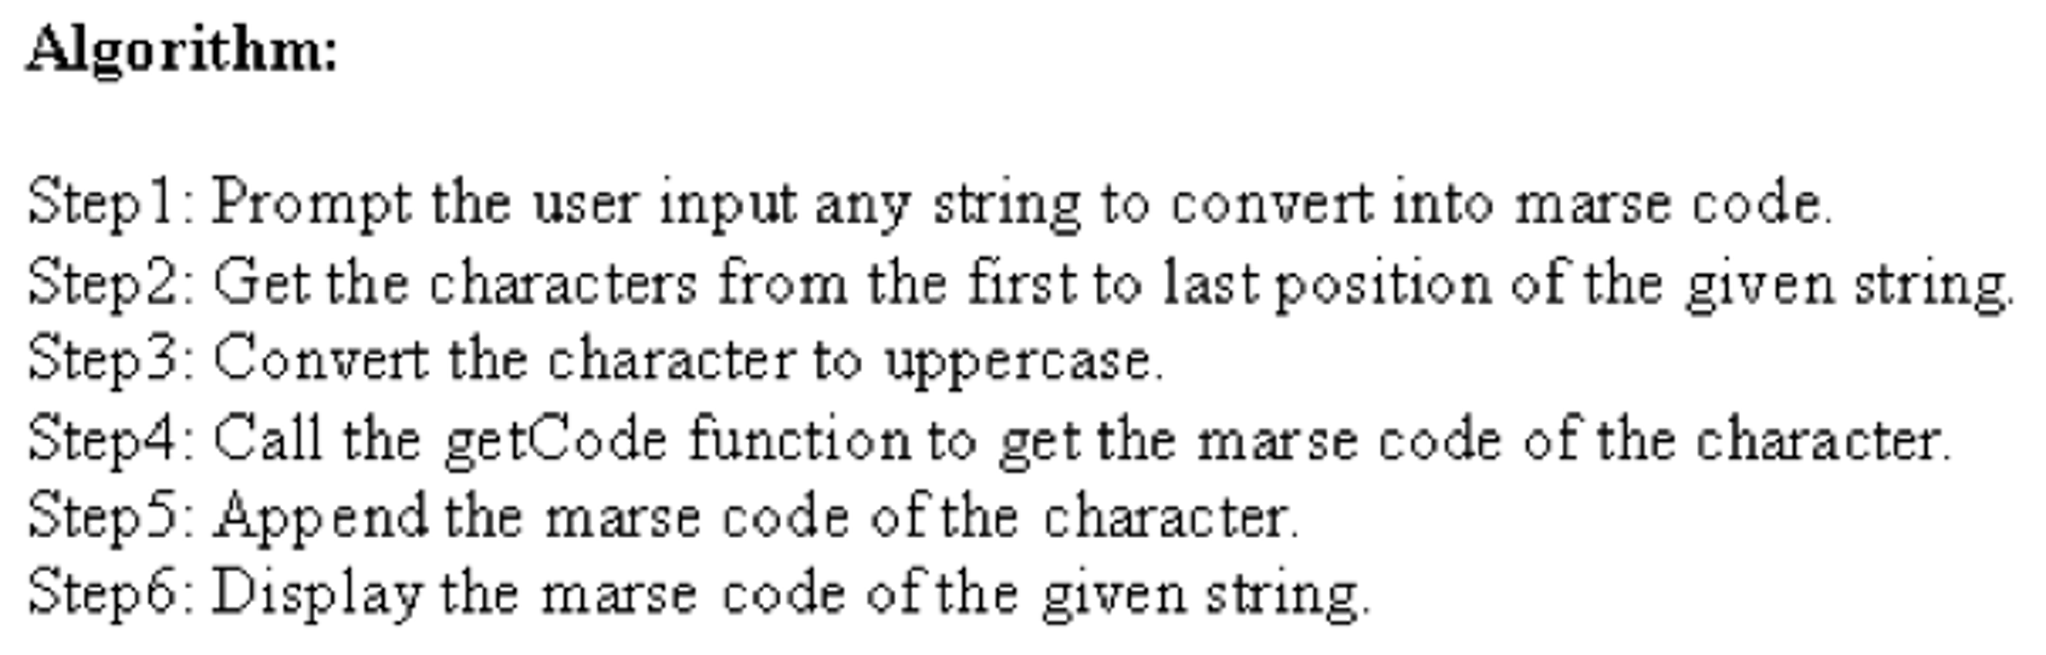 algorithm step1 prompt the user input any string to convert into marse code step2